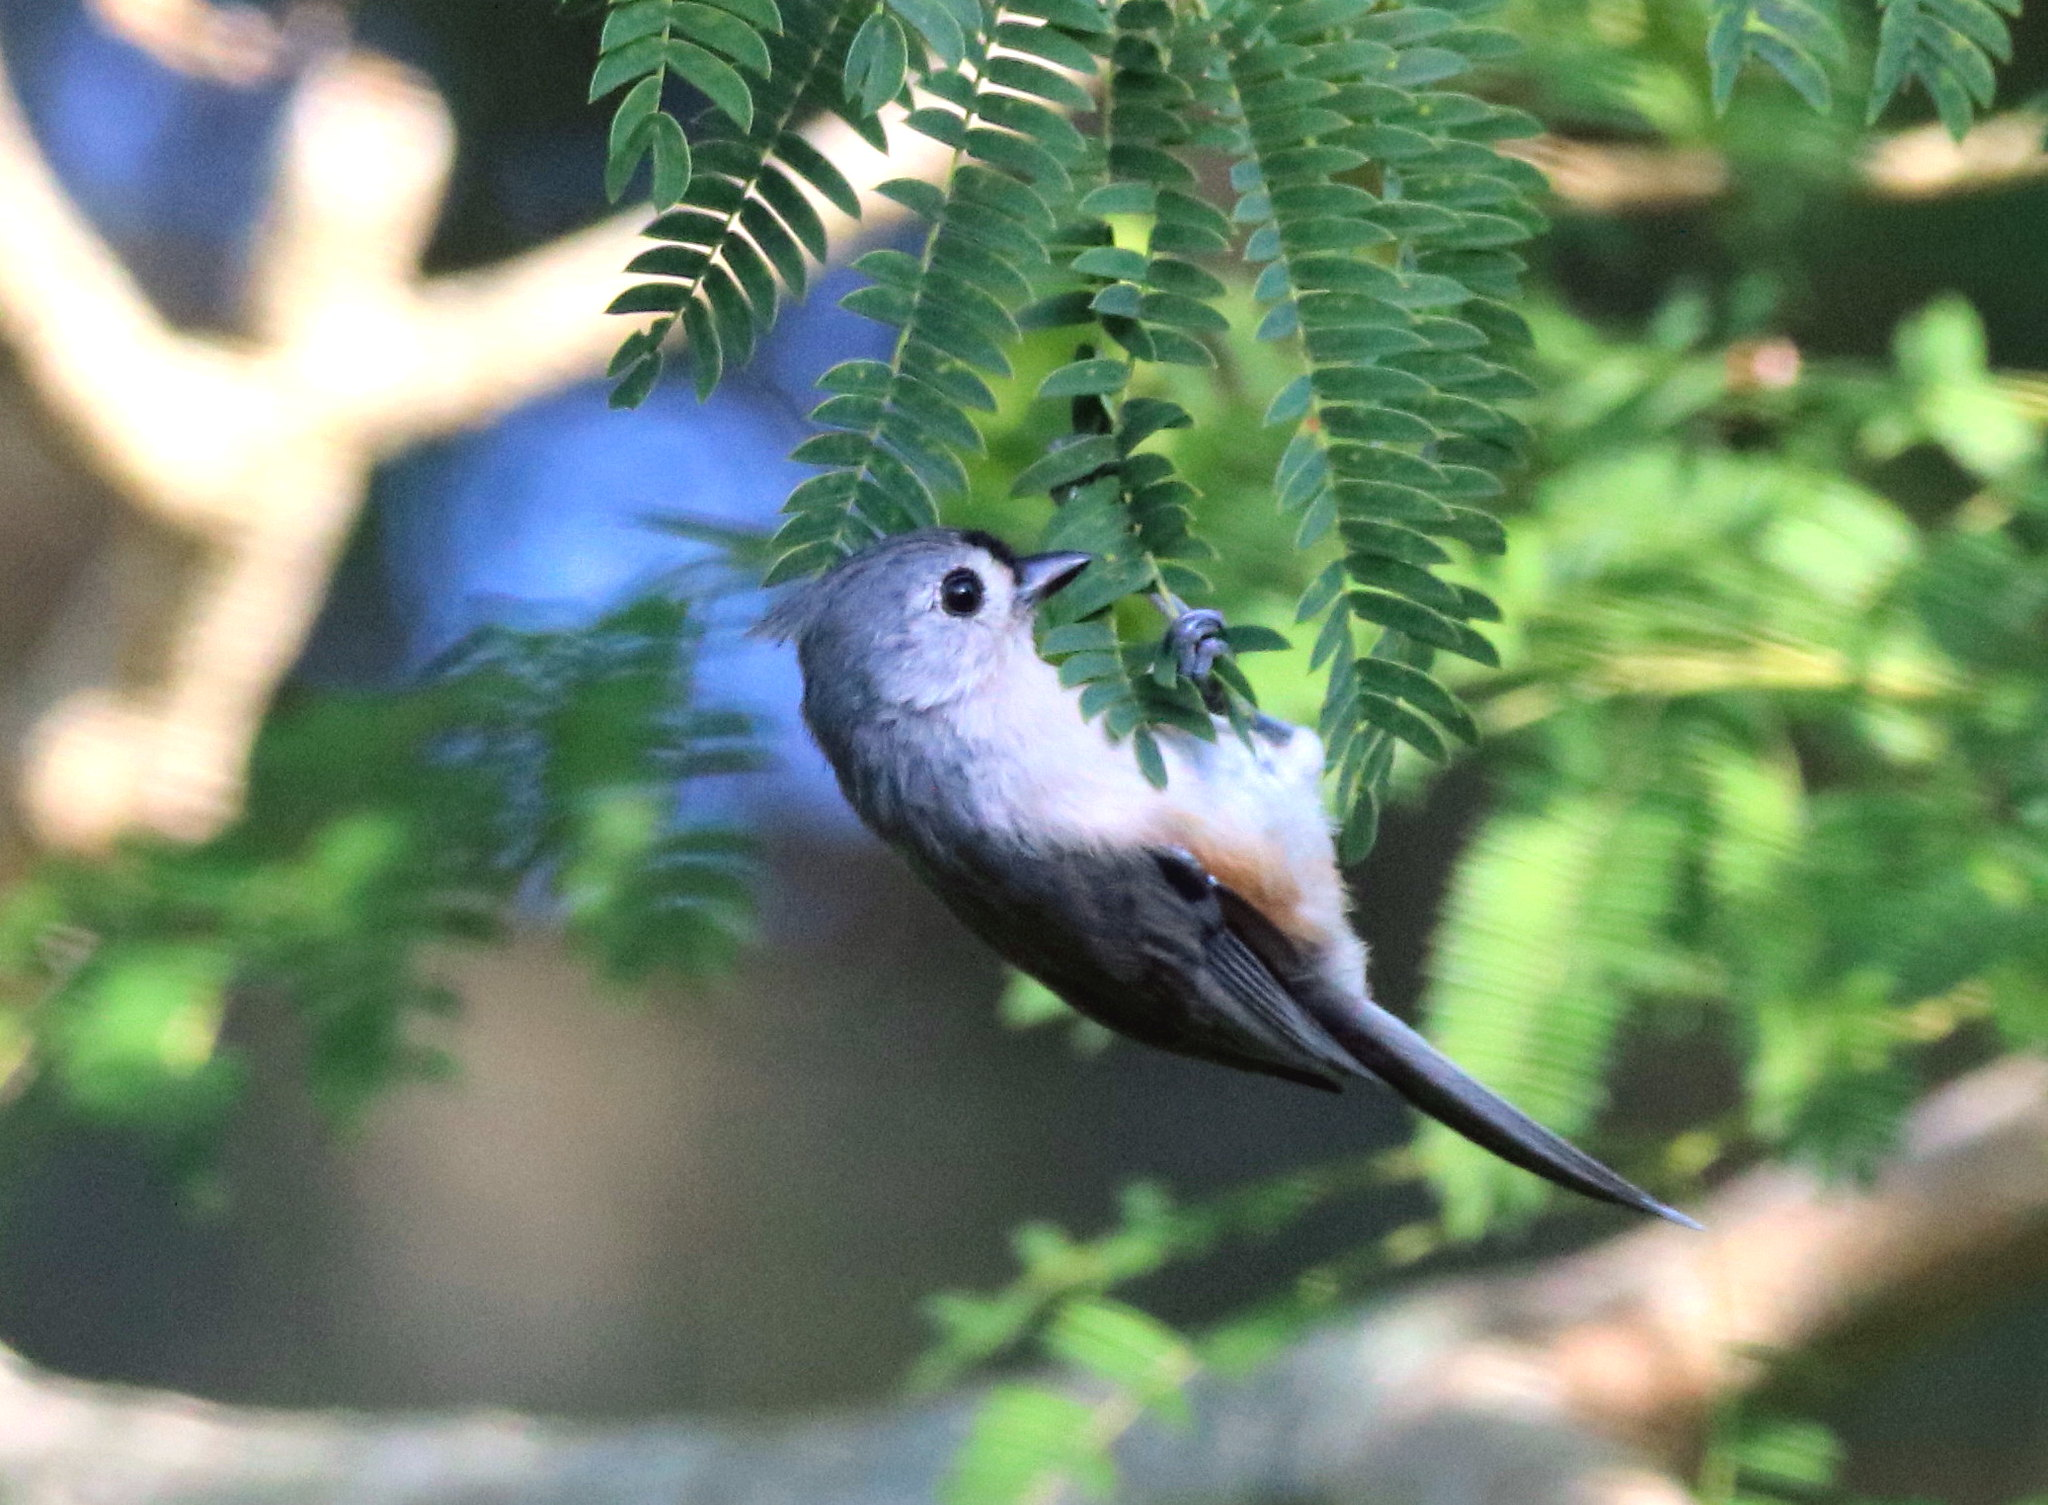 I found this cute little TUFTED TITMOUSE hanging around the house this morning. Yardbirds, Winter Haven, Fl.